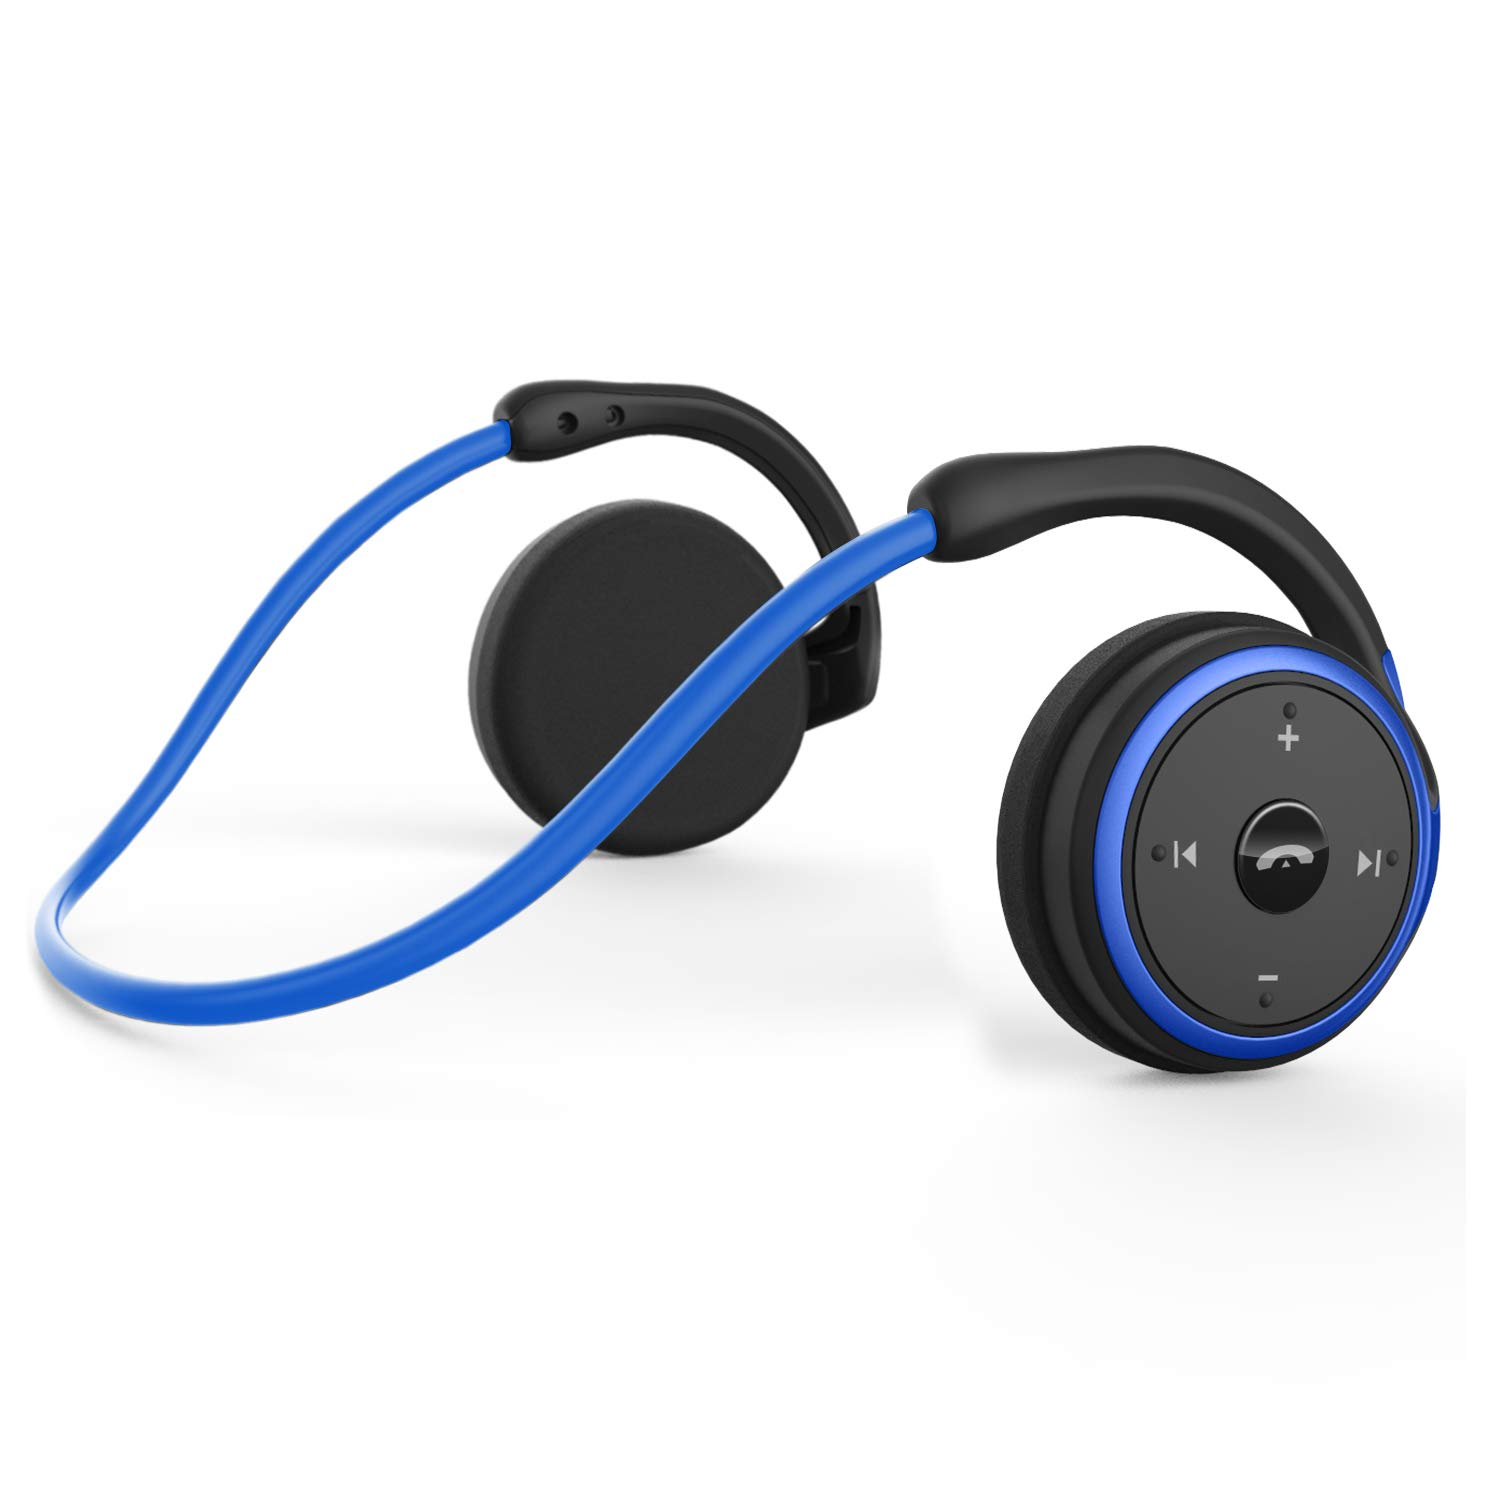 Small Bluetooth Headphones Behind The Head, Sports Wireless Headset with Built in Microphone and Crystal-Clear Sound, Fold-able and Carried in The Purse, and 12-Hour Battery Life, Blue by LEVIN